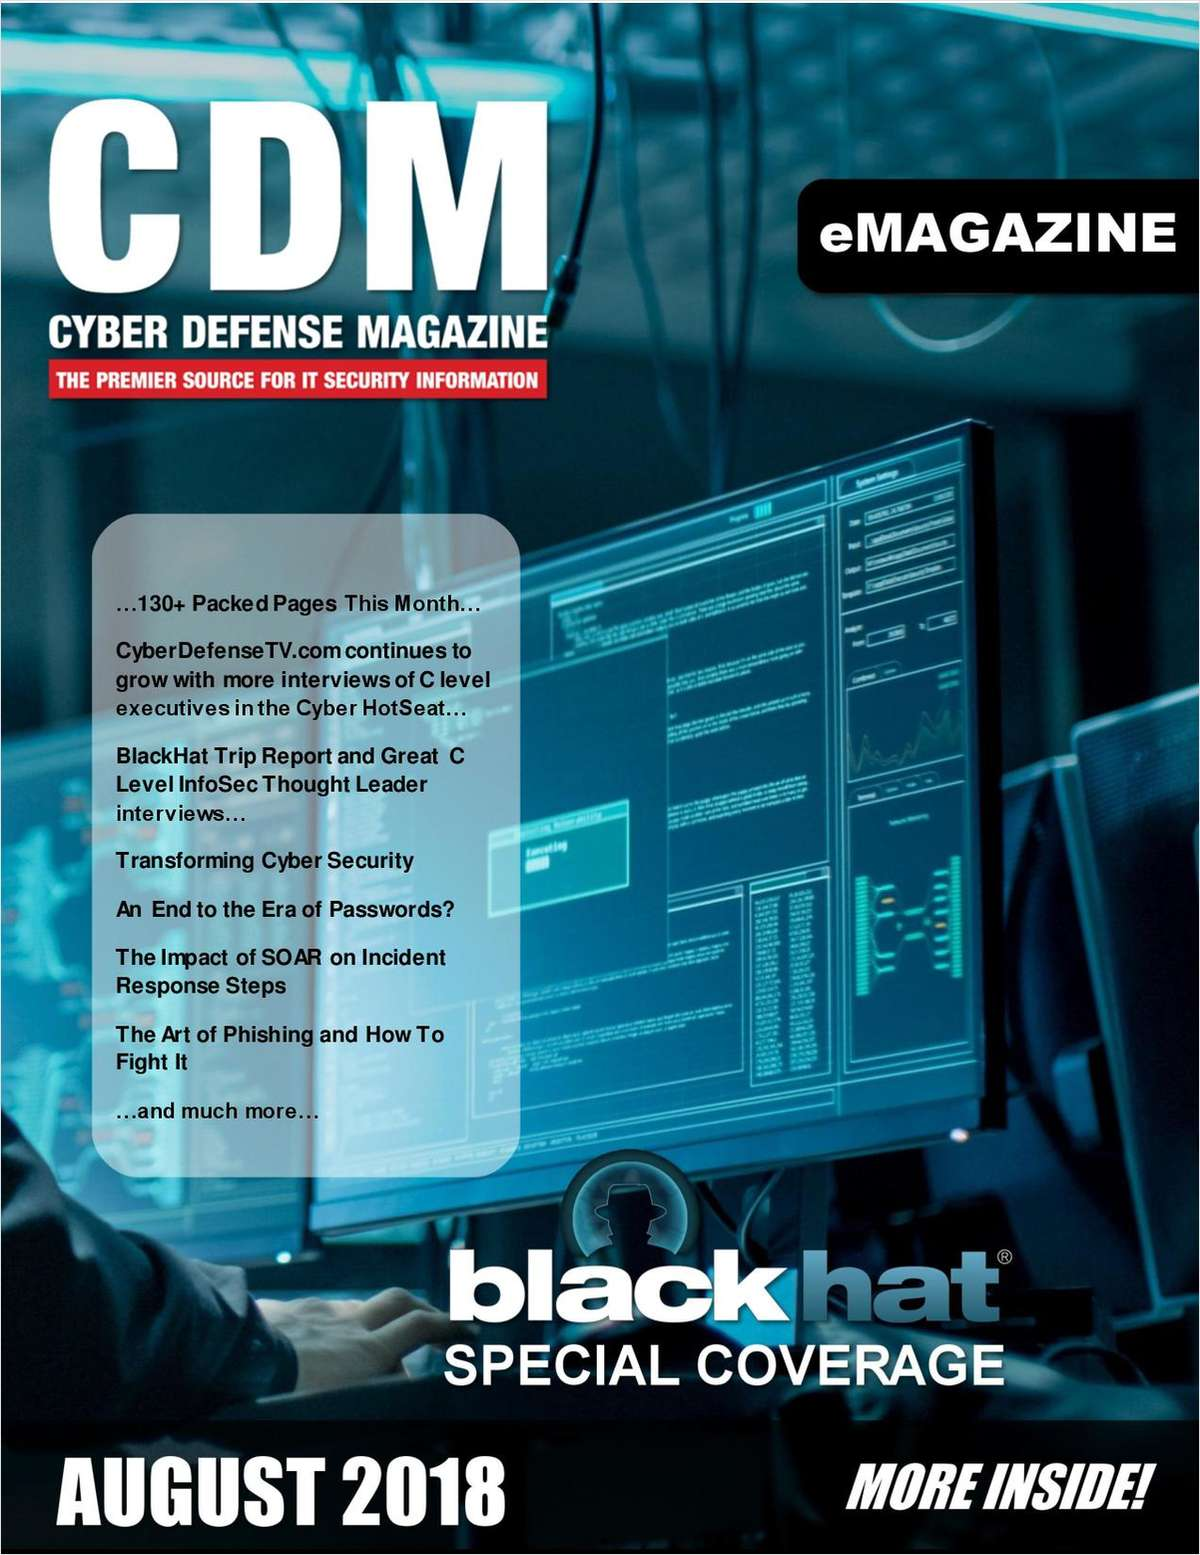 Cyber Defense eMagazine - BlackHat Special Coverage - August 2018 Edition